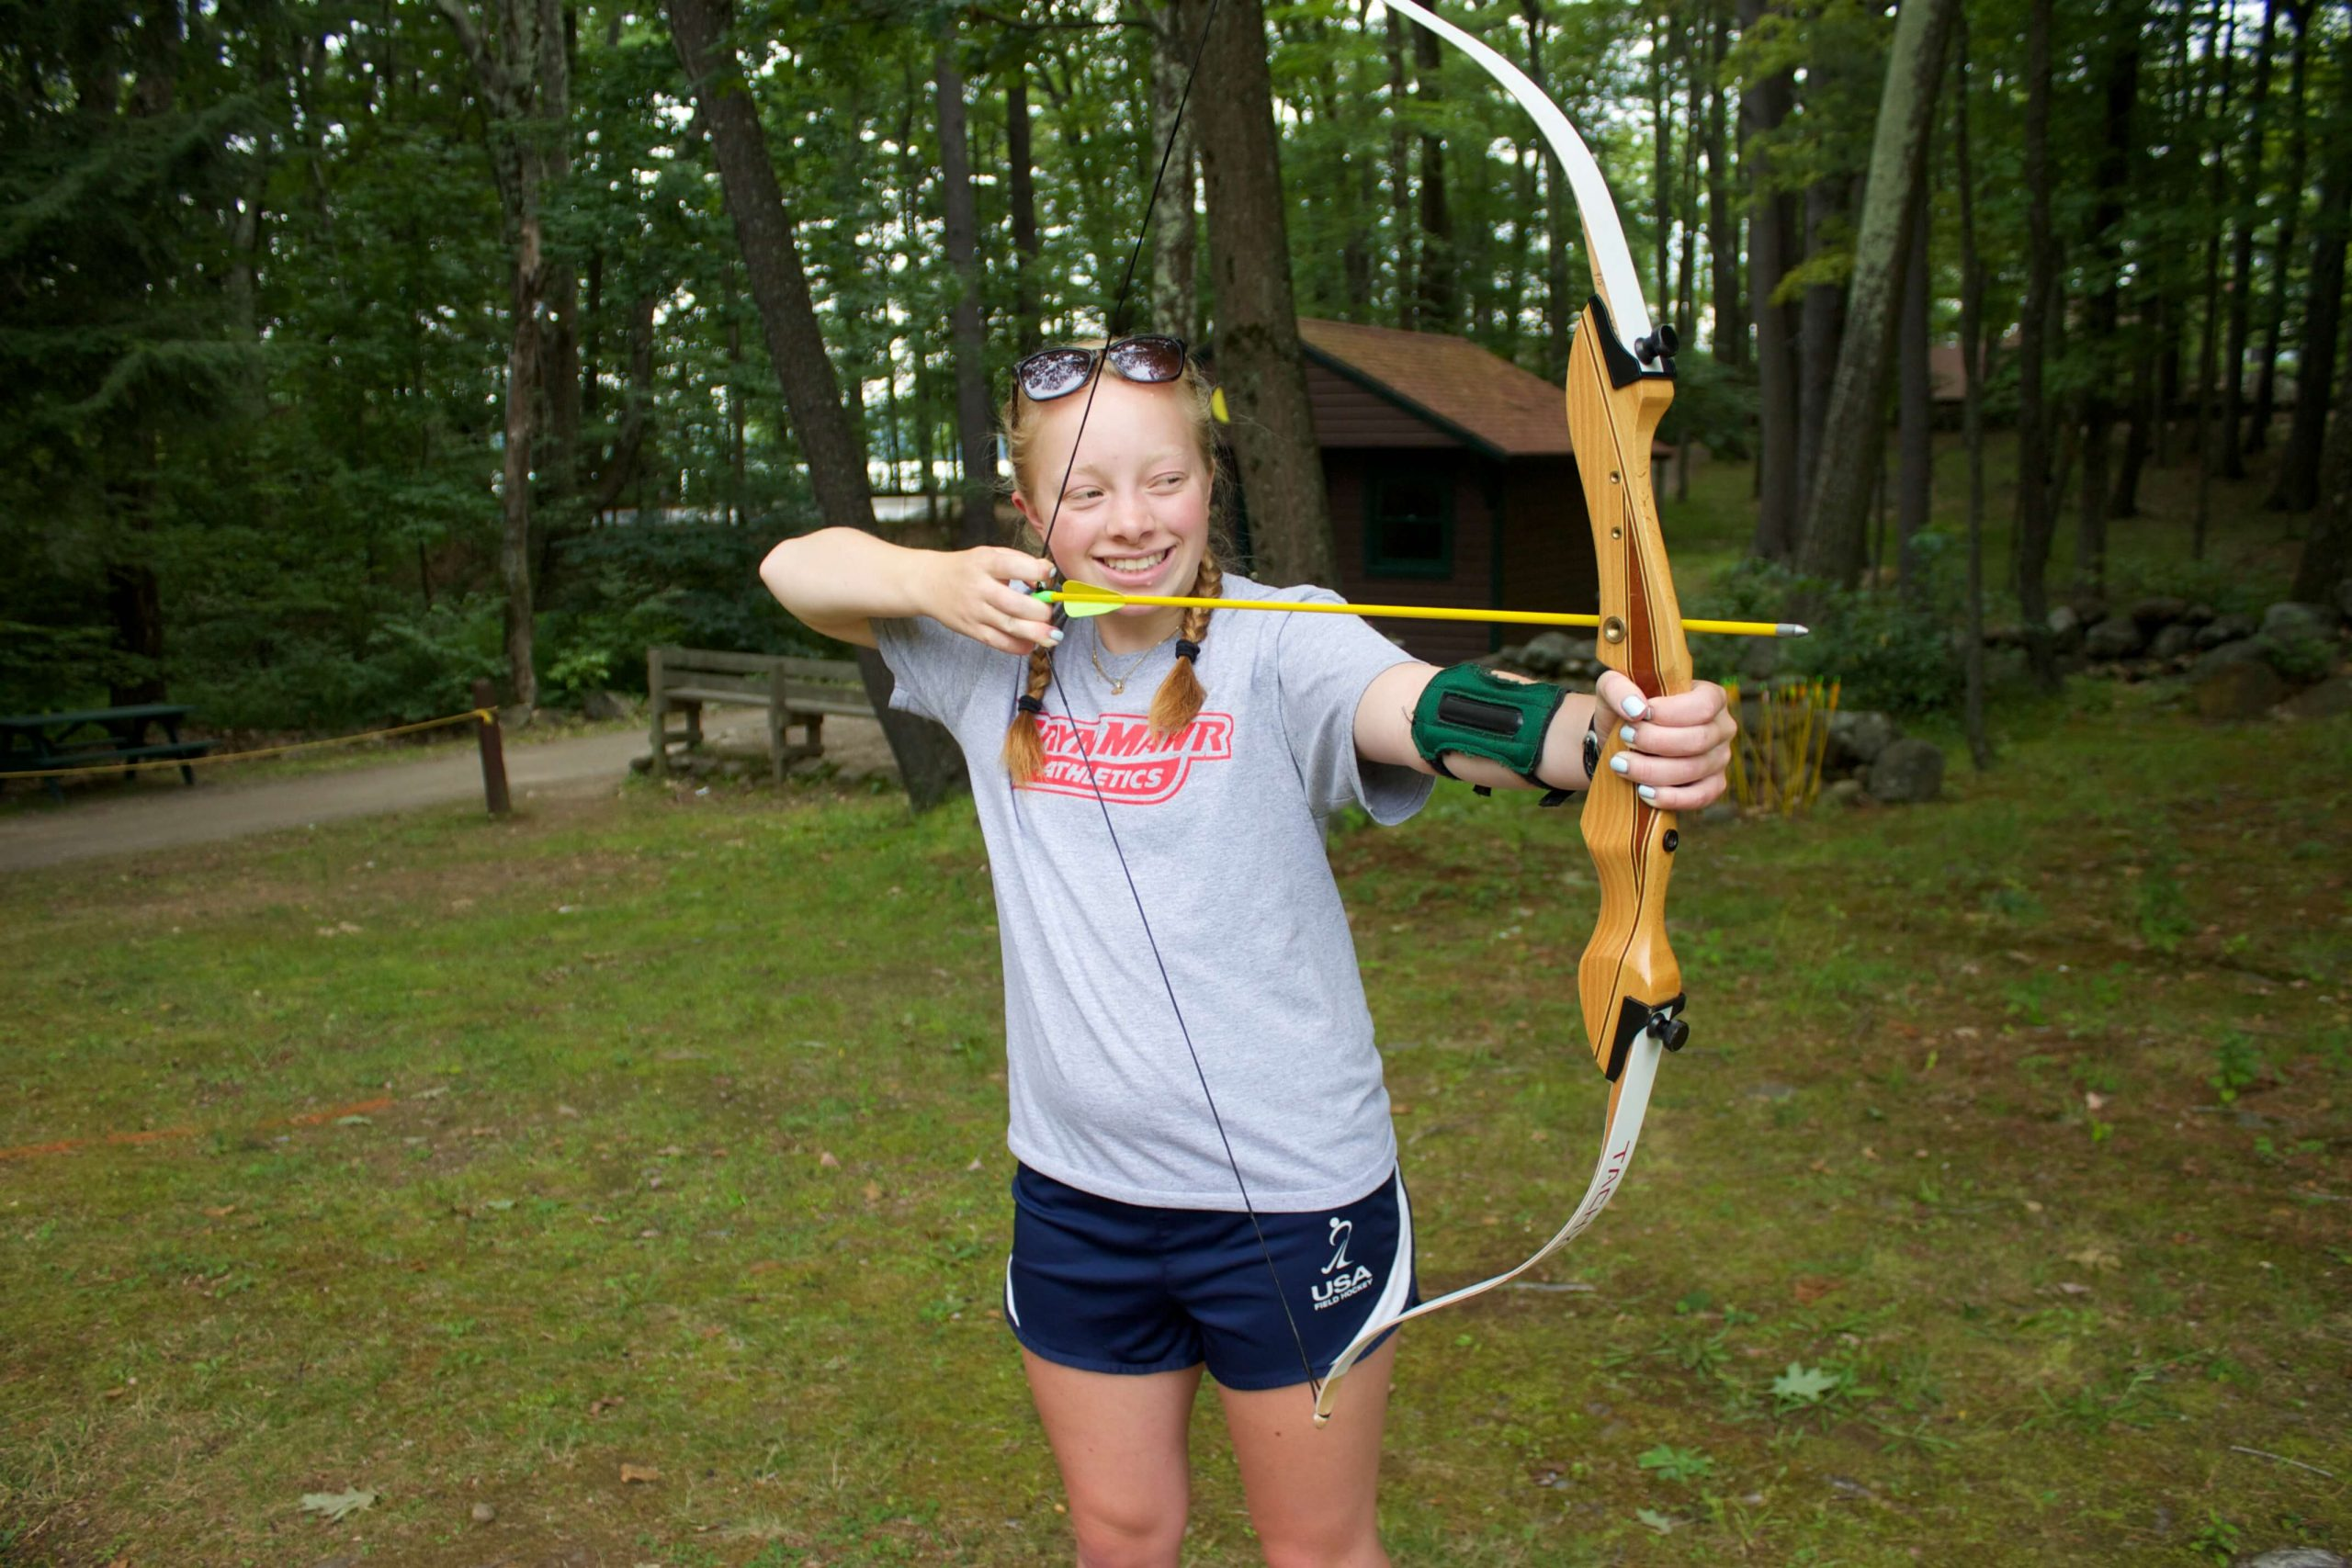 archery experience at a camp in america